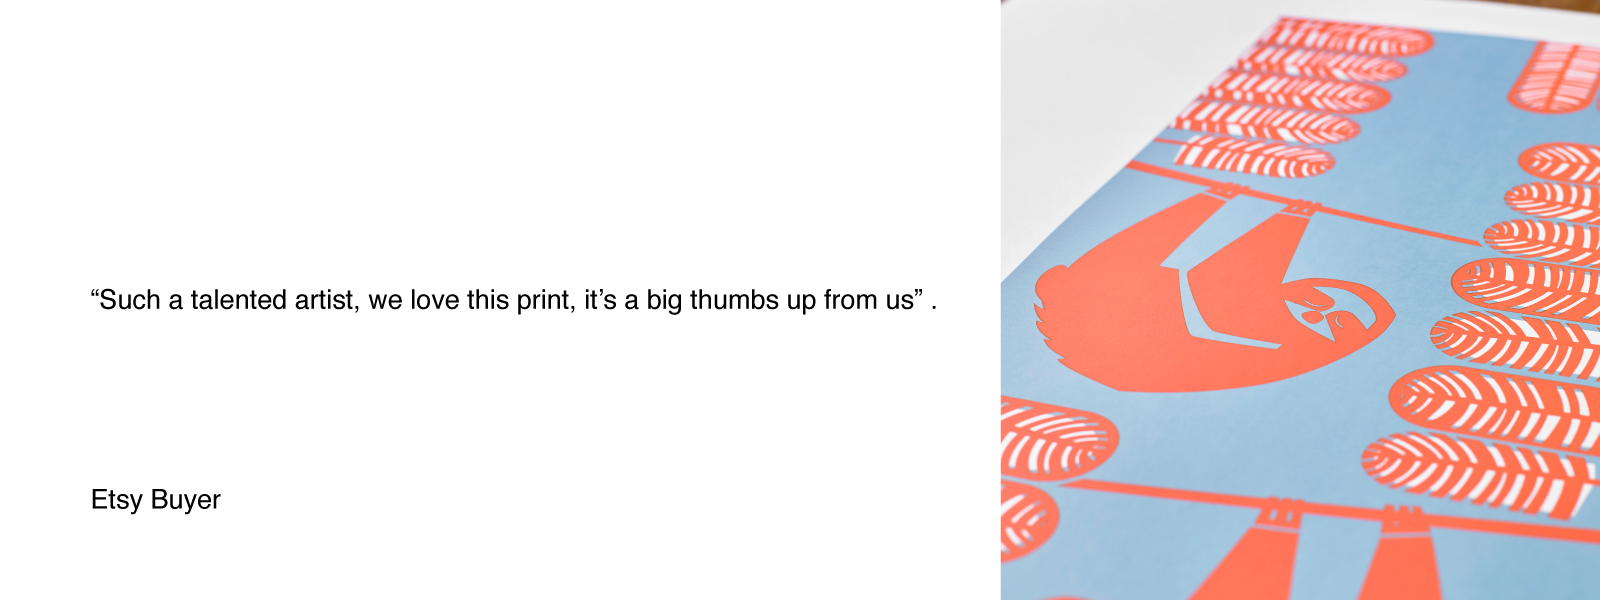 bobbie print summer sloth hand pulled screen print review